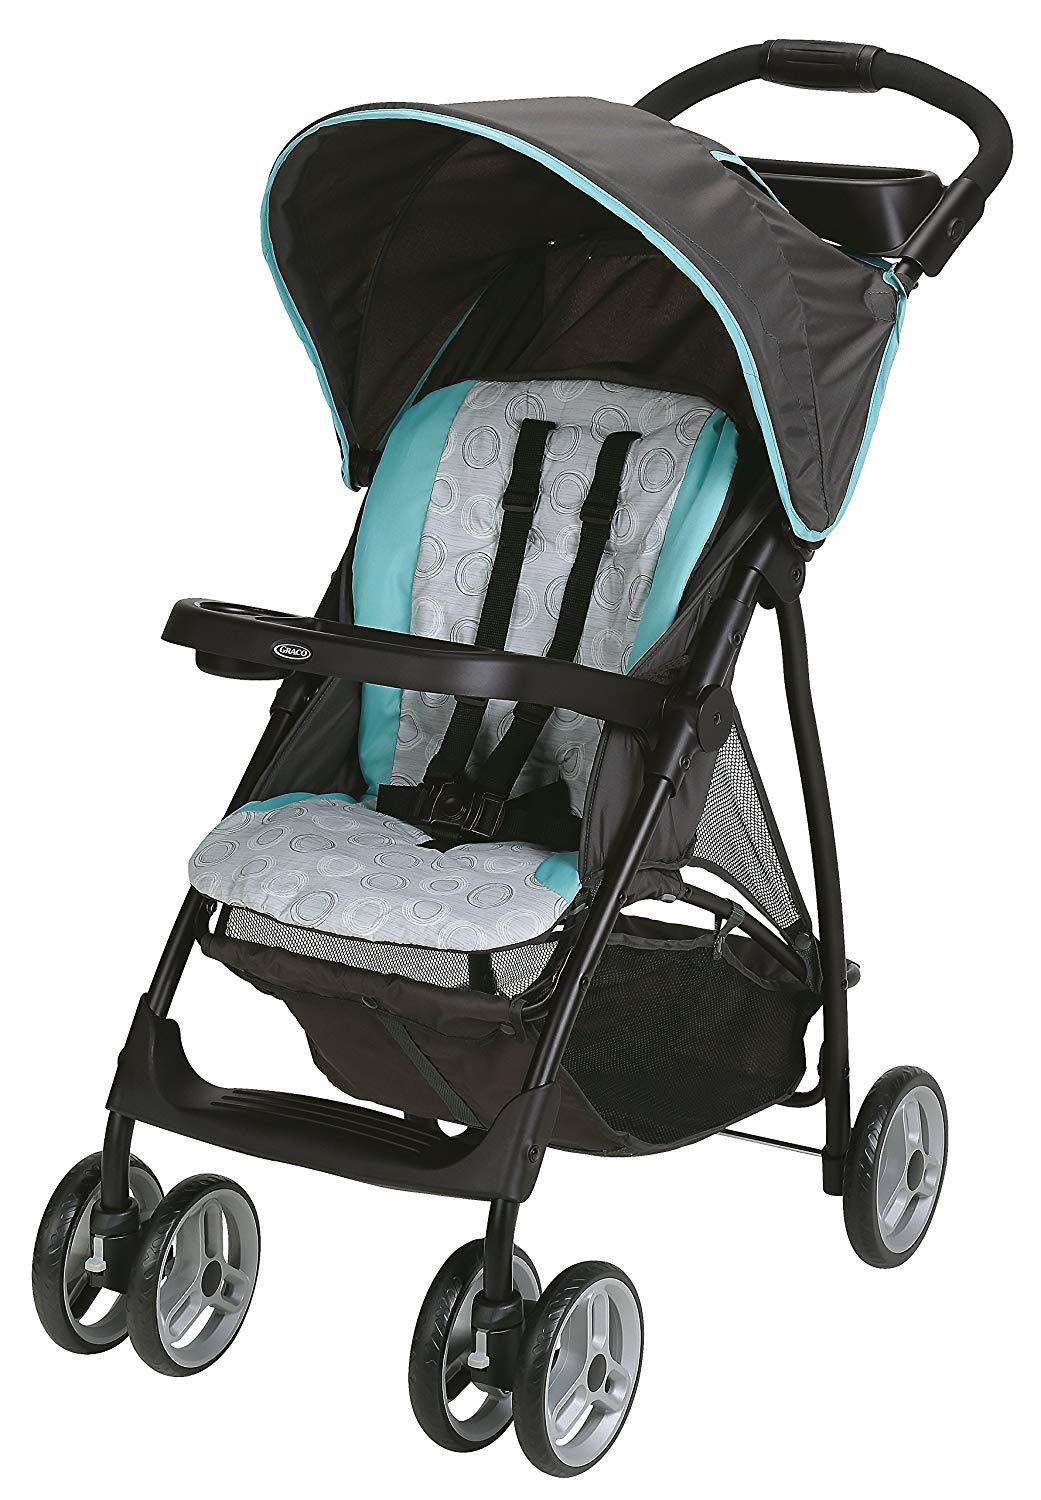 graco lite rider stroller for rental